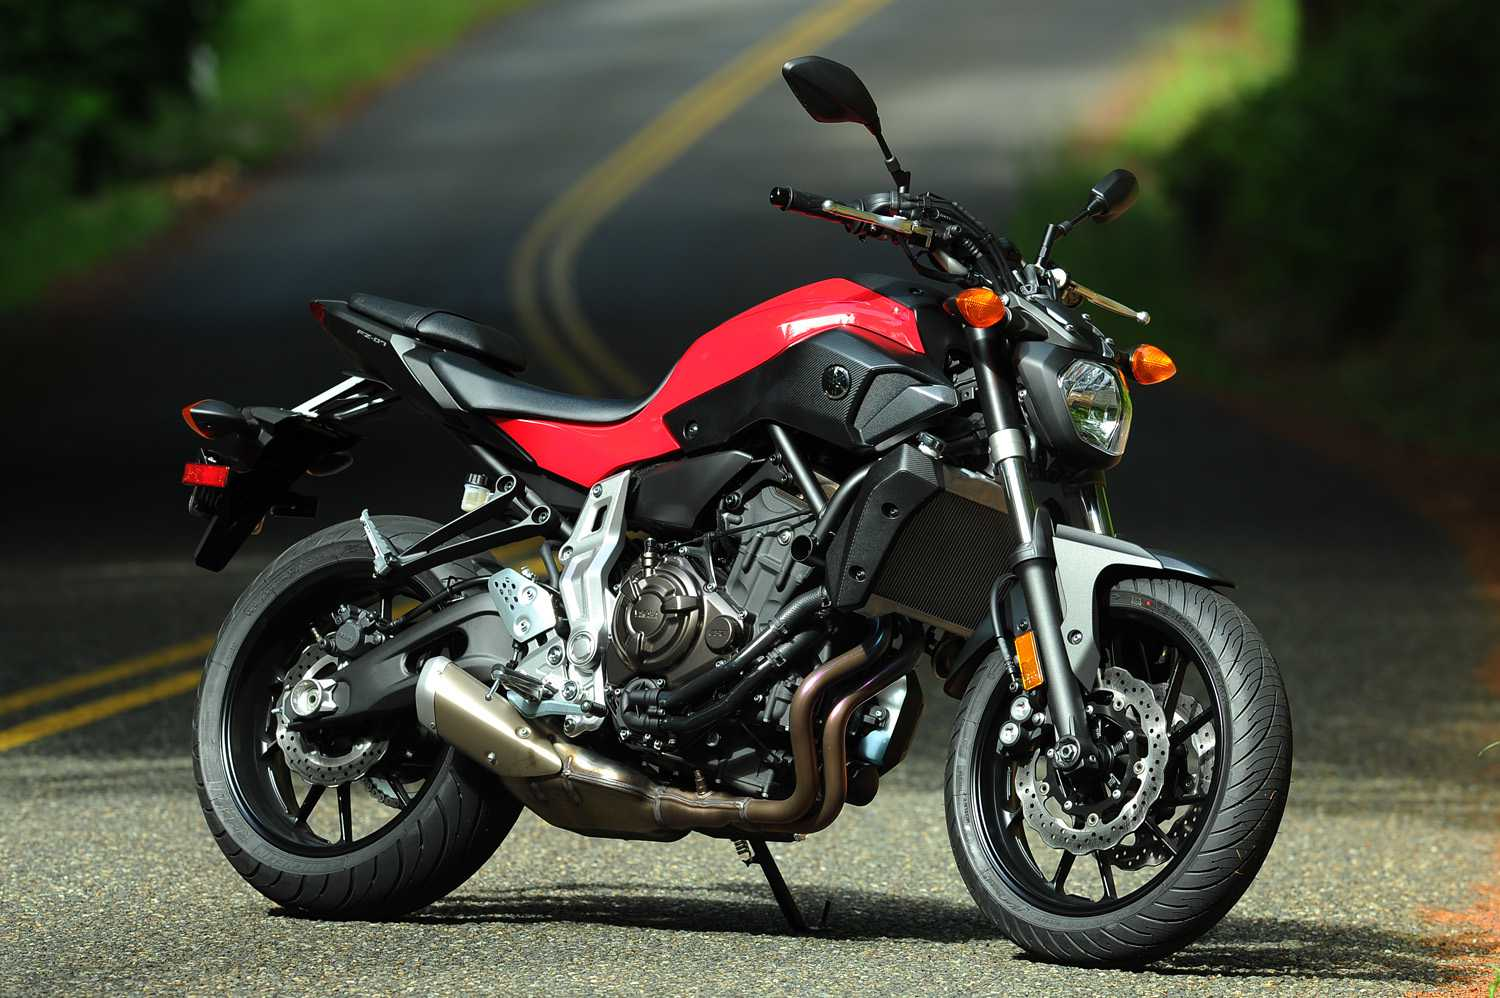 2015 yamaha fz 07 in rapid red